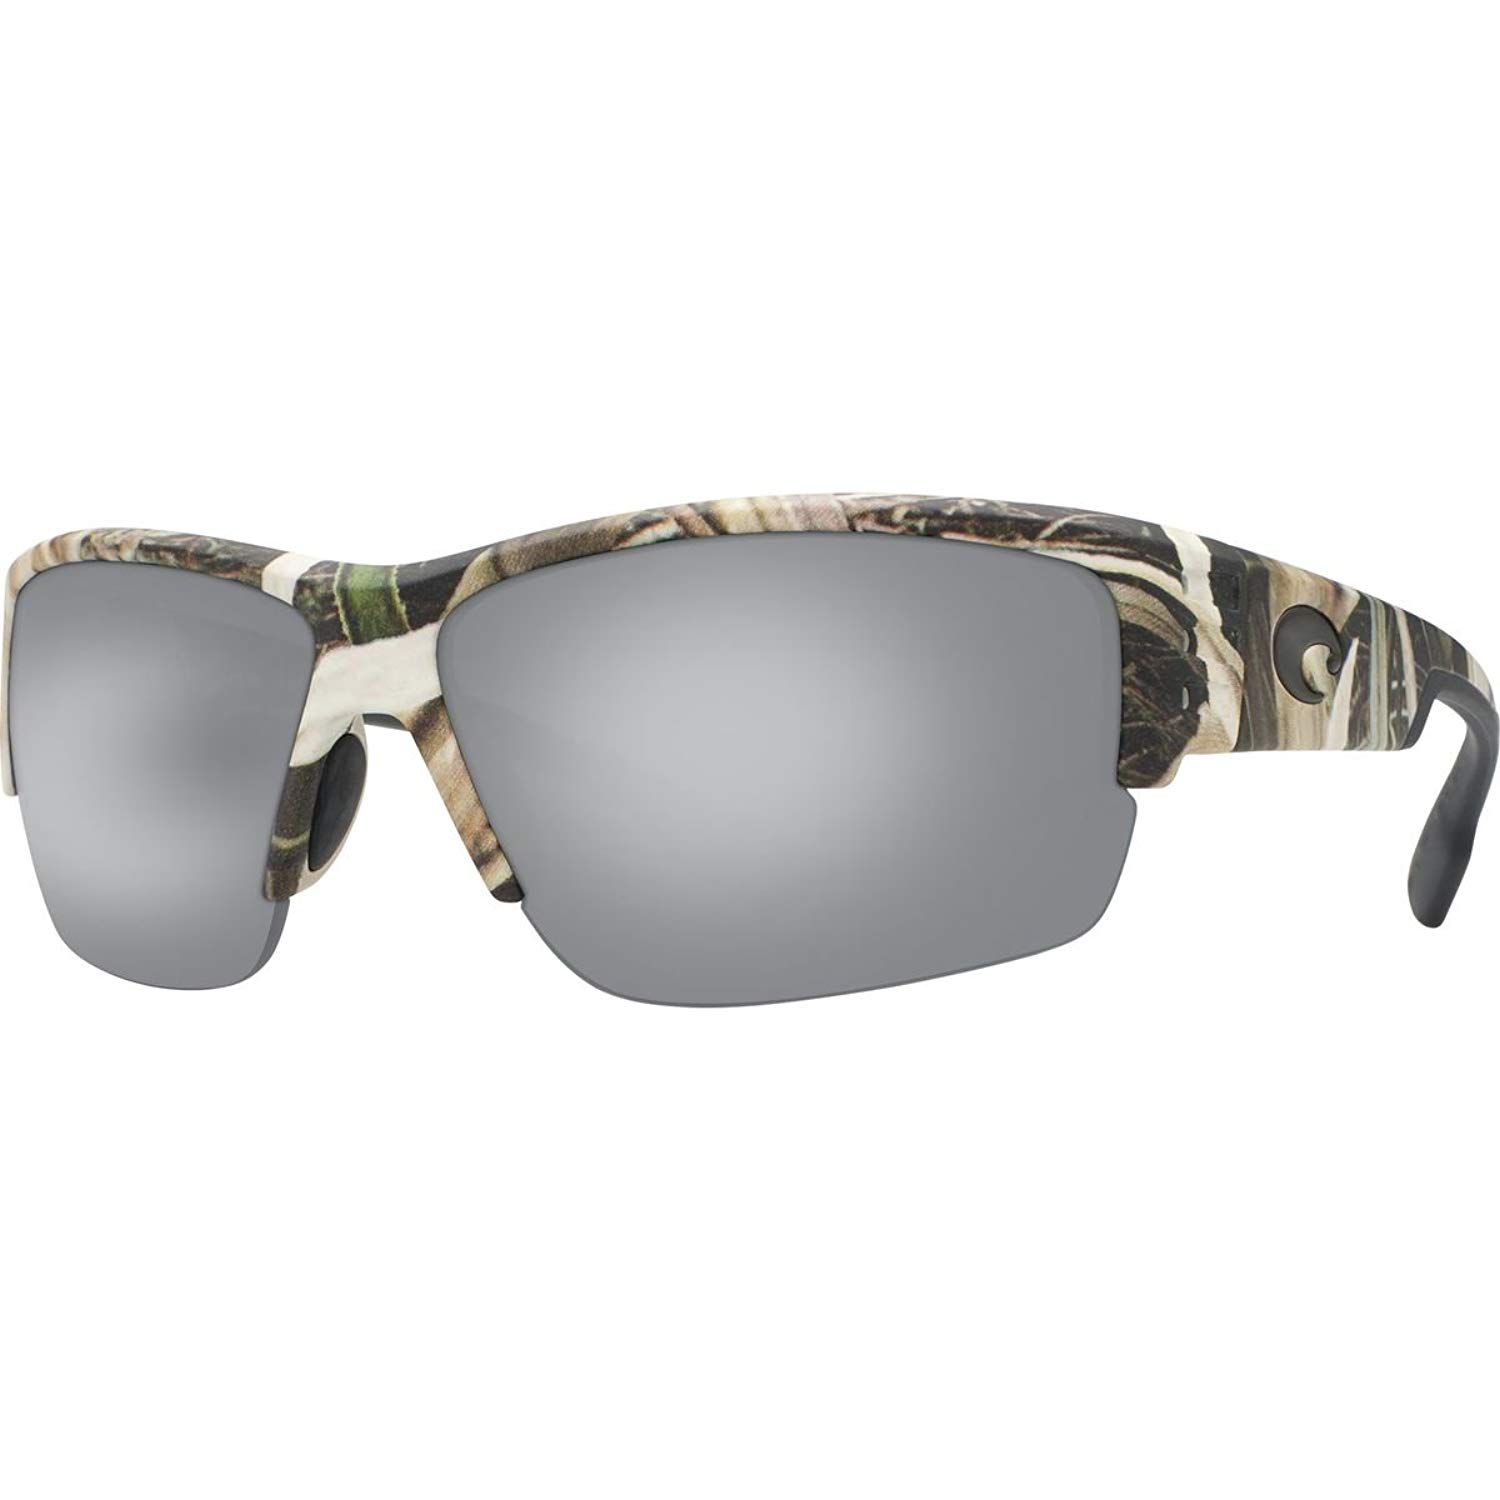 8d57aeee27 Get Quotations · Costa Del Mar Sunglasses - Hatch- Plastic   Frame  Mossy  Oak Shadow Grass Blades